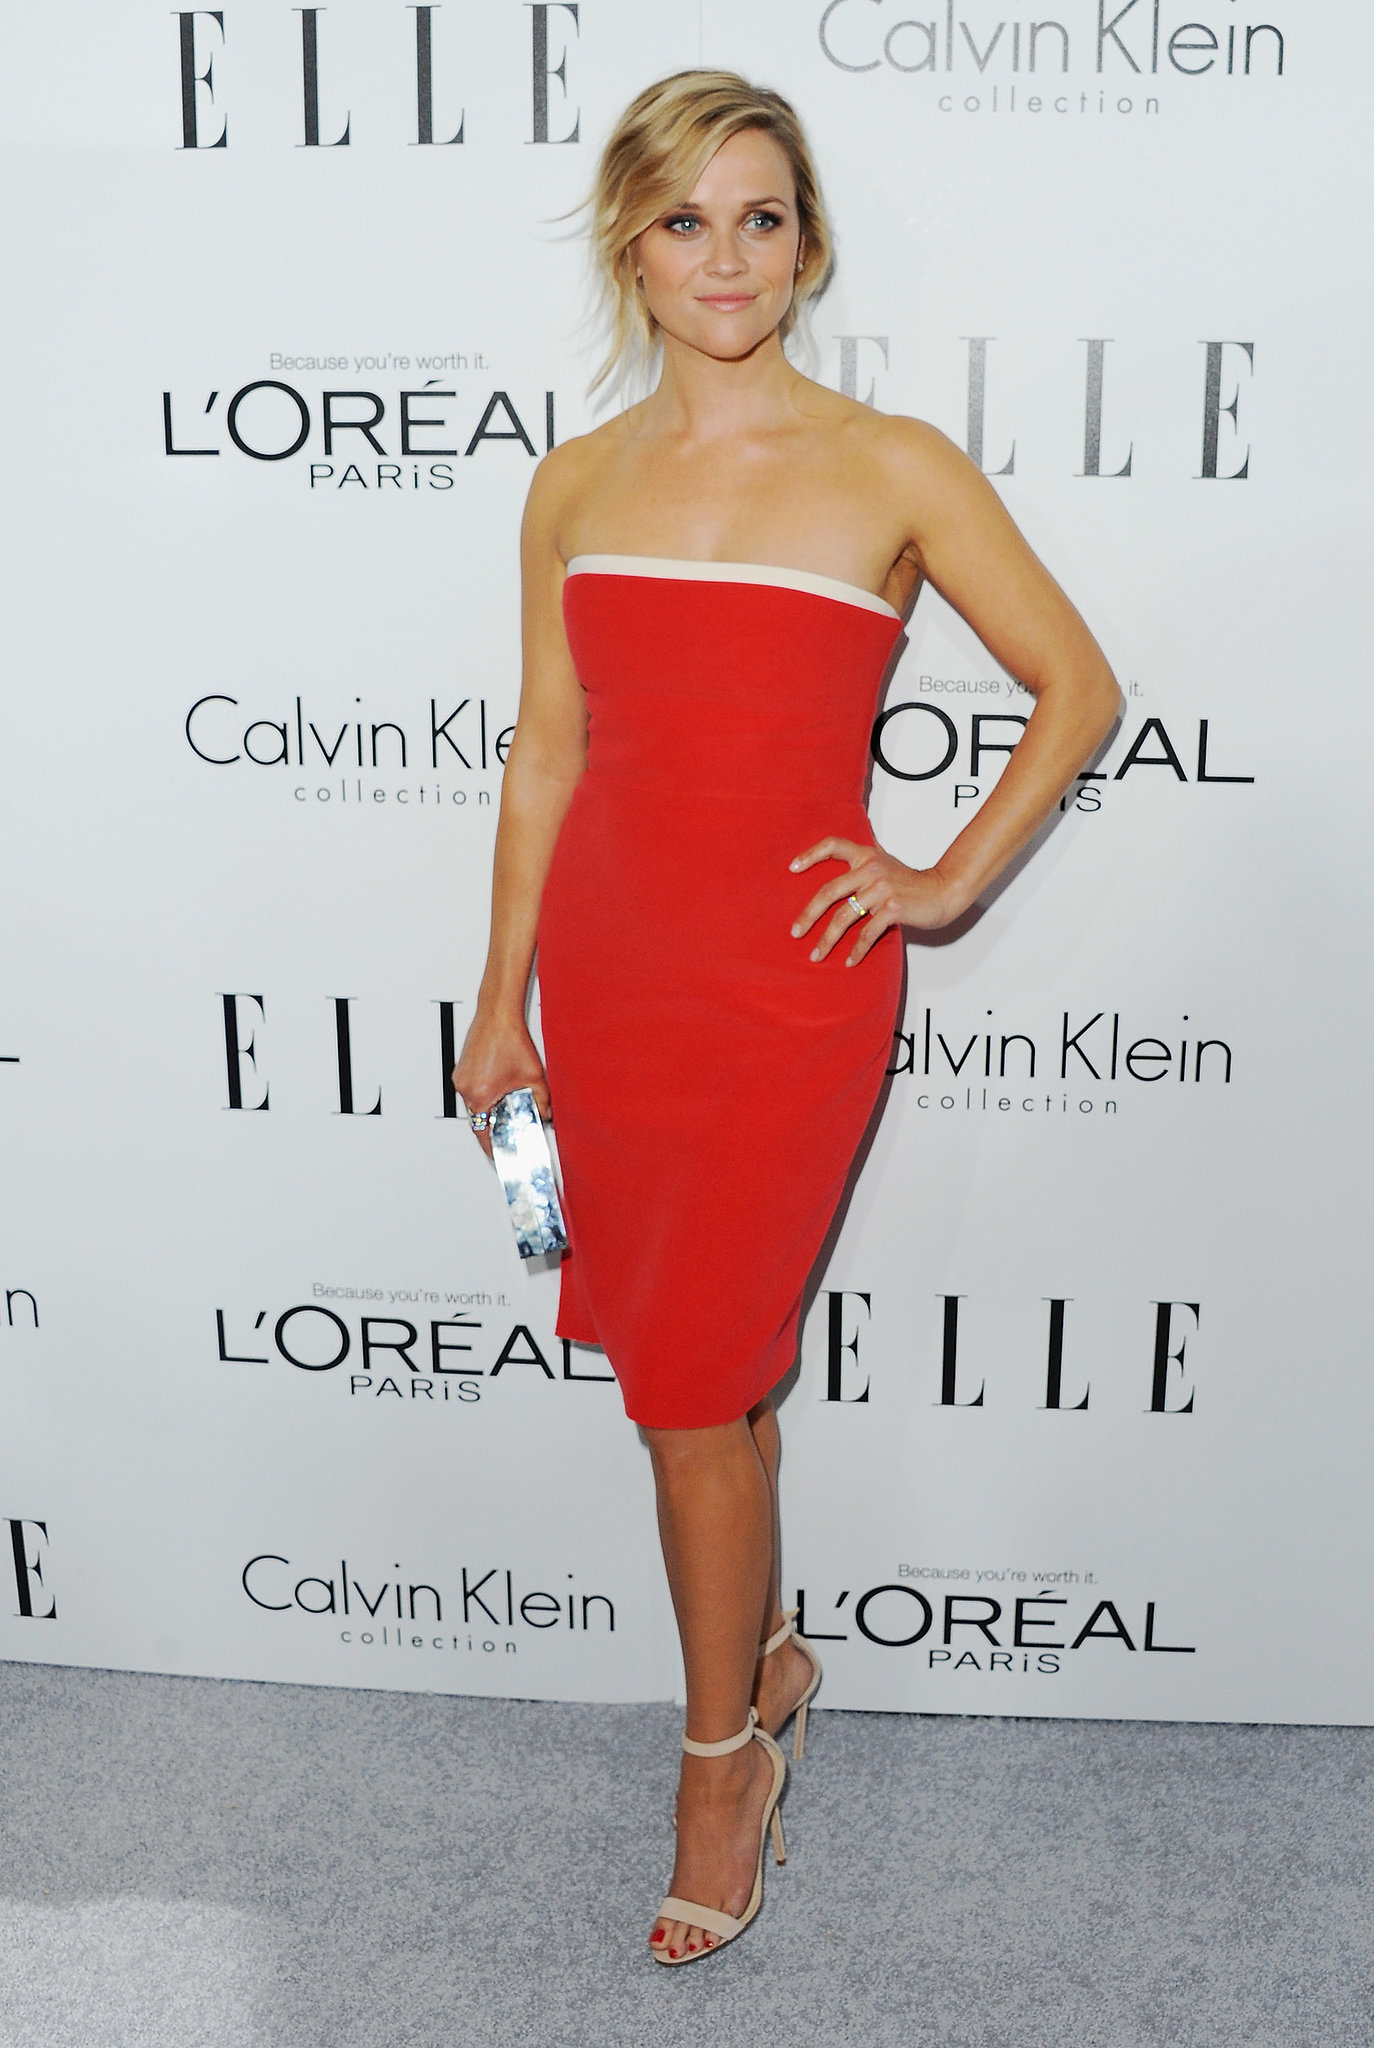 Reese Witherspoon and Lea Michele Show Their Girl Power